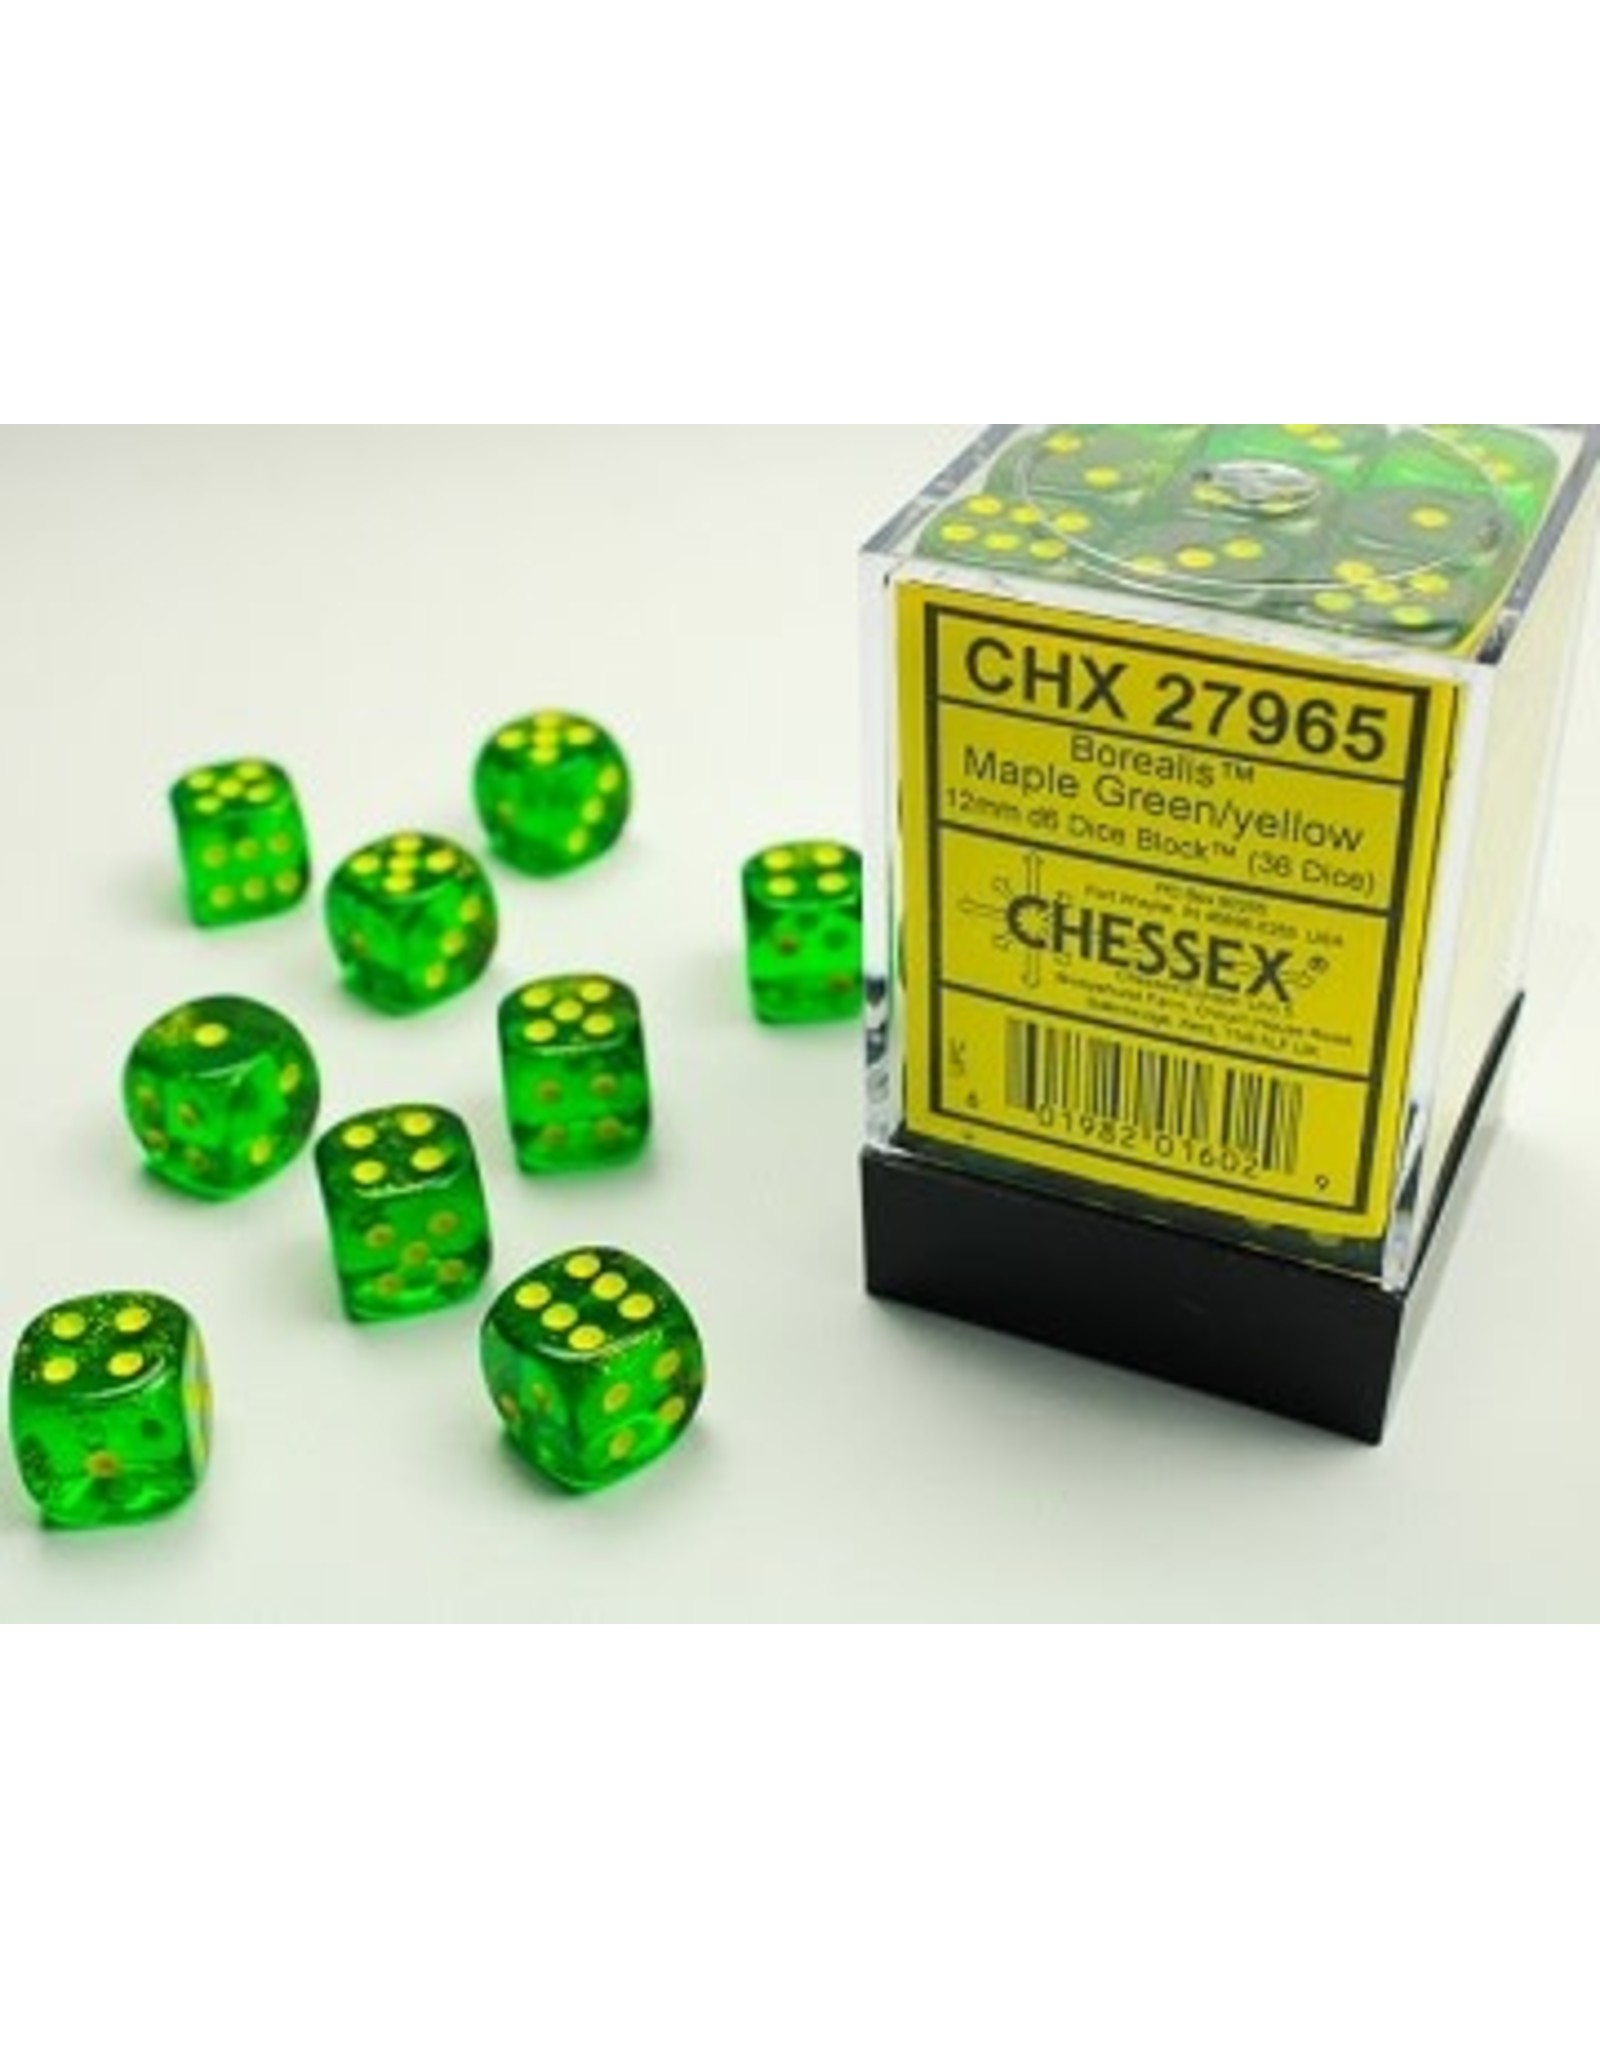 CHESSEX BOREALIS 36D6 MAPLE GREEN/YELLOW 12MM